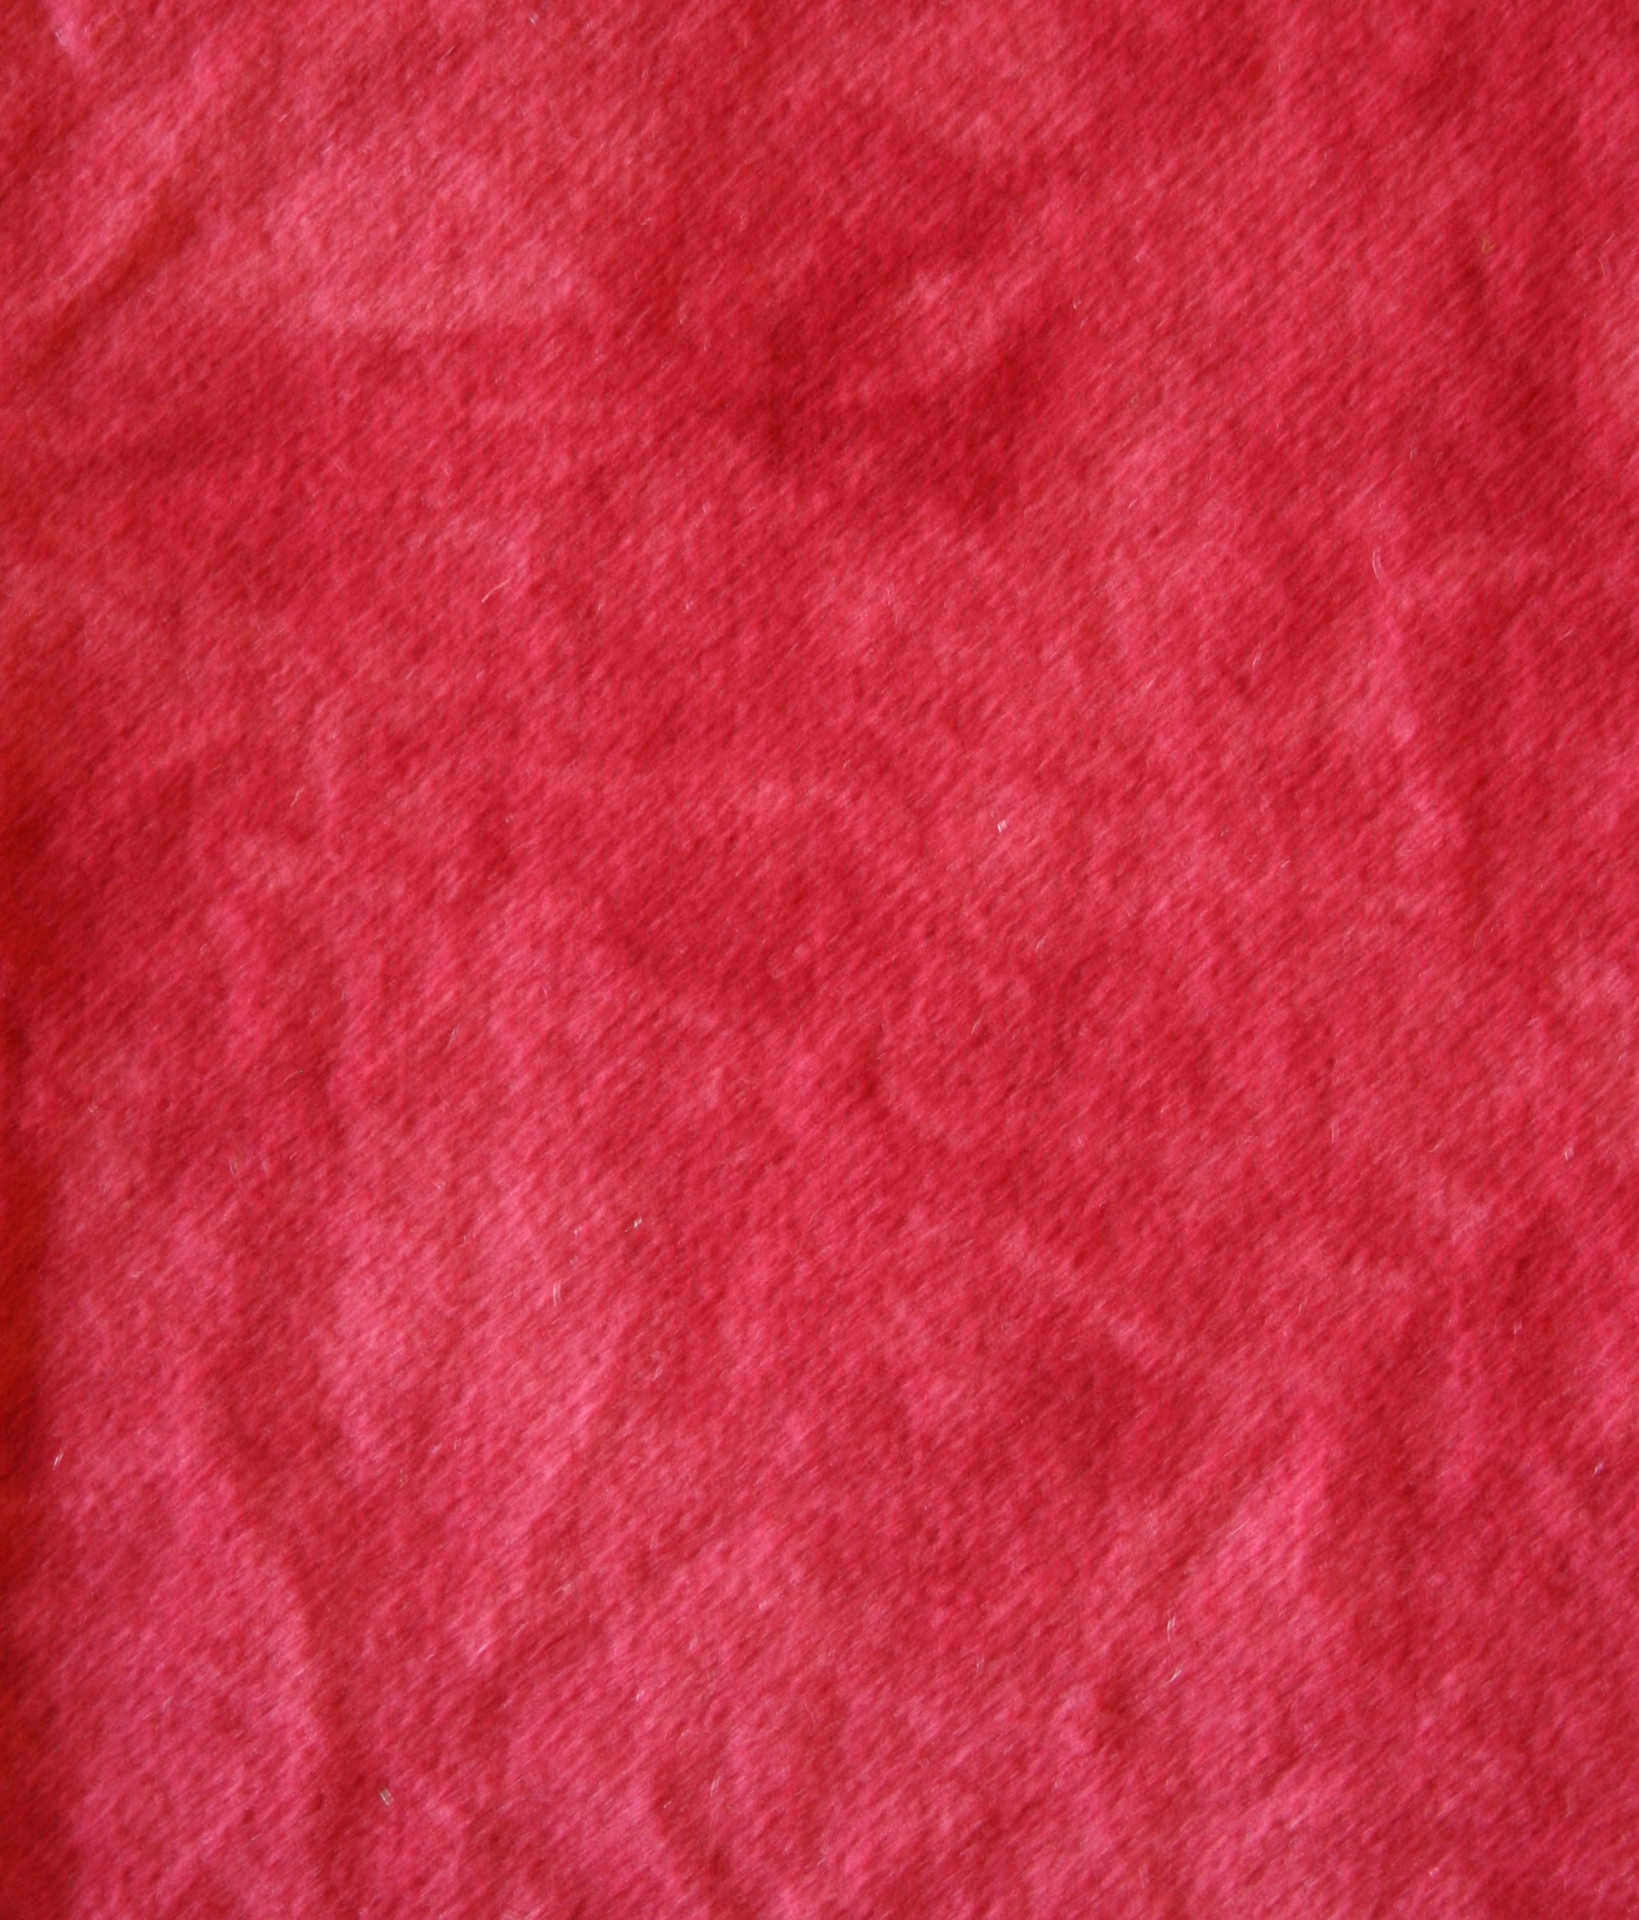 Ruby Red Hand Dyed 100% Wool Part of the Cotton Candy Collection